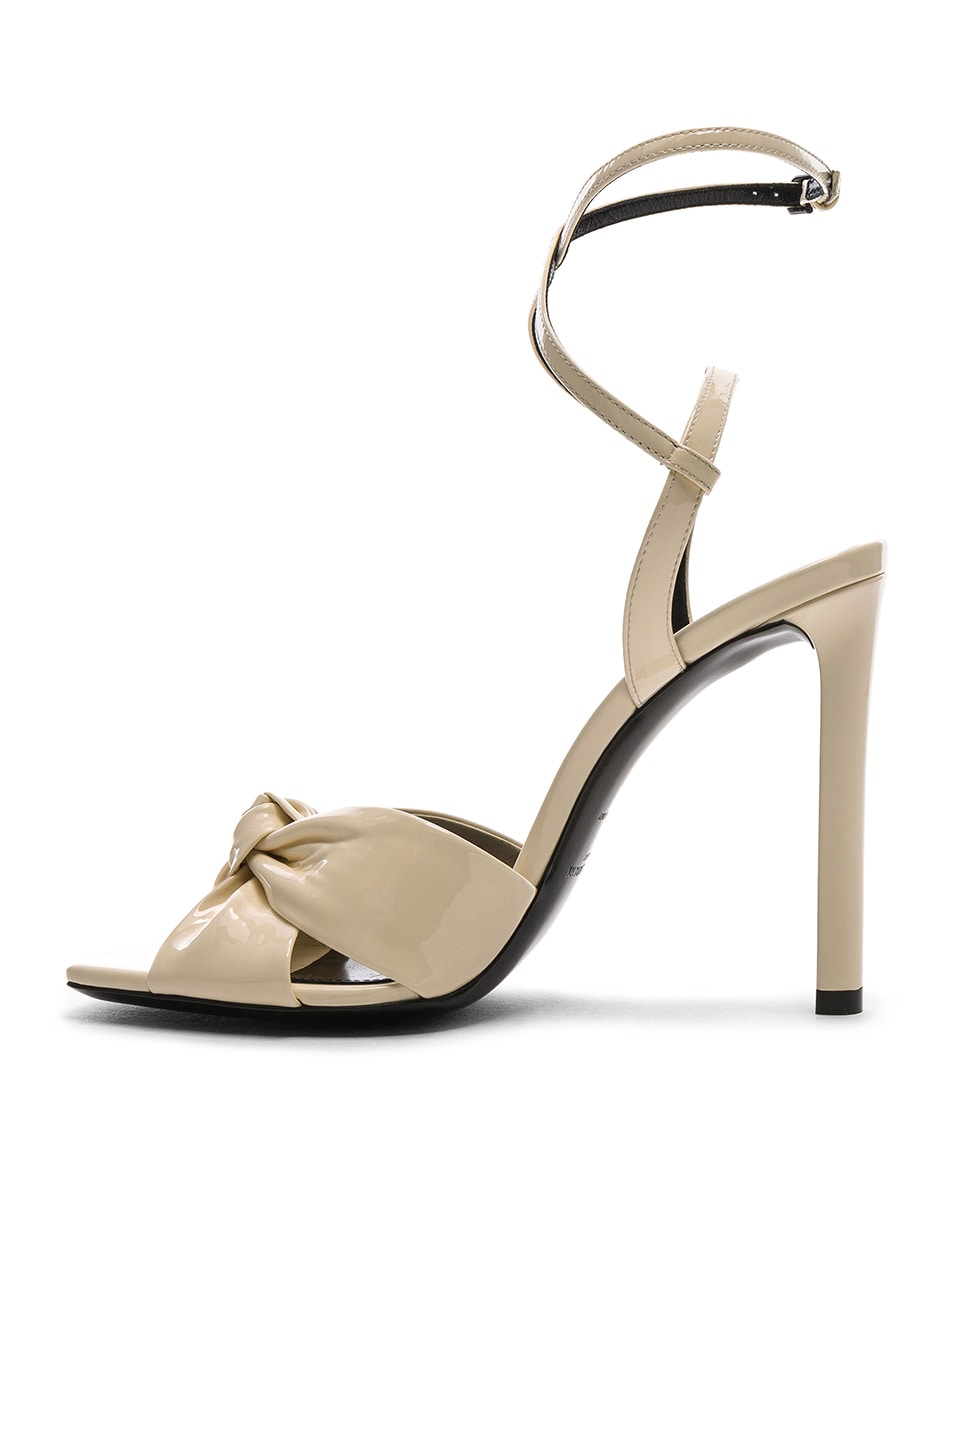 Image 5 of Saint Laurent Patent Amy Ankle Strap Sandals in Porcelain